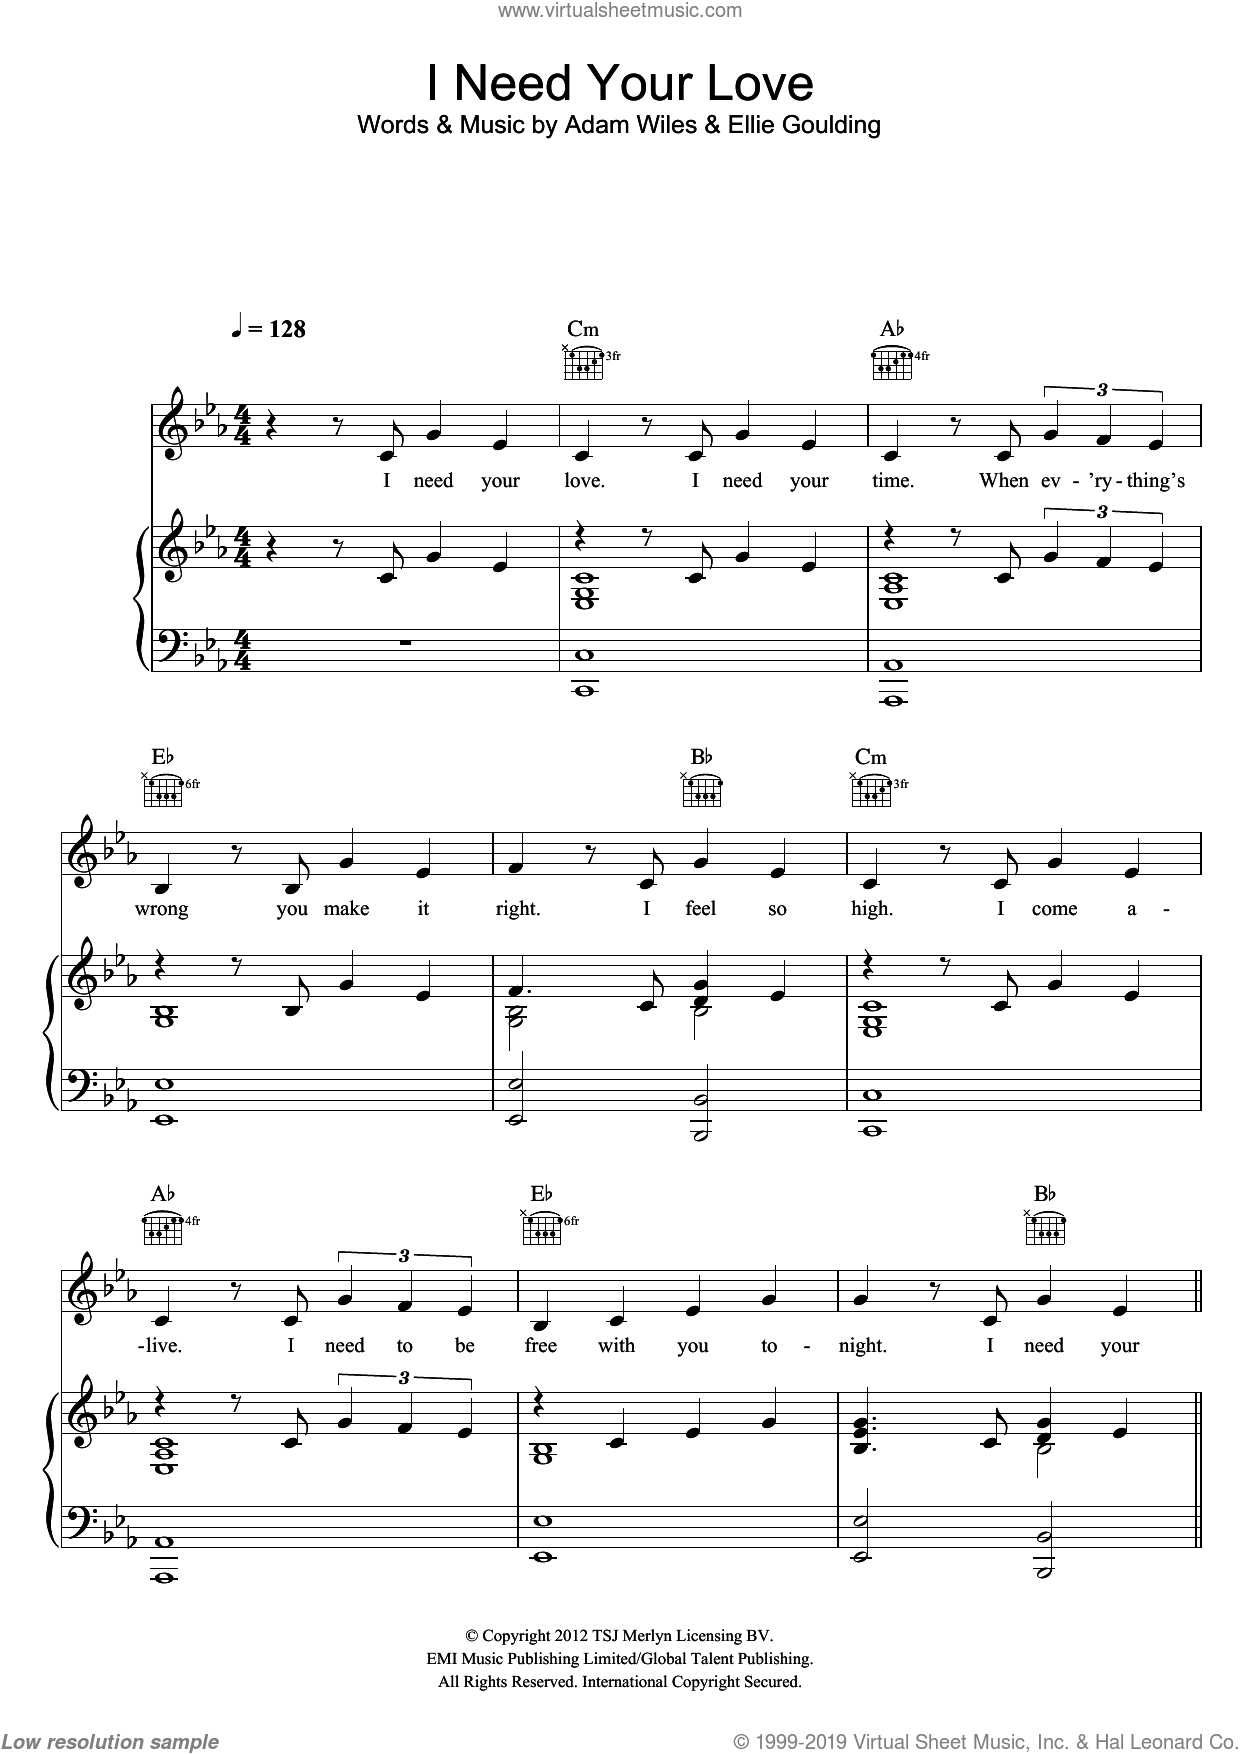 I Need Your Love sheet music for voice, piano or guitar by Adam Wiles